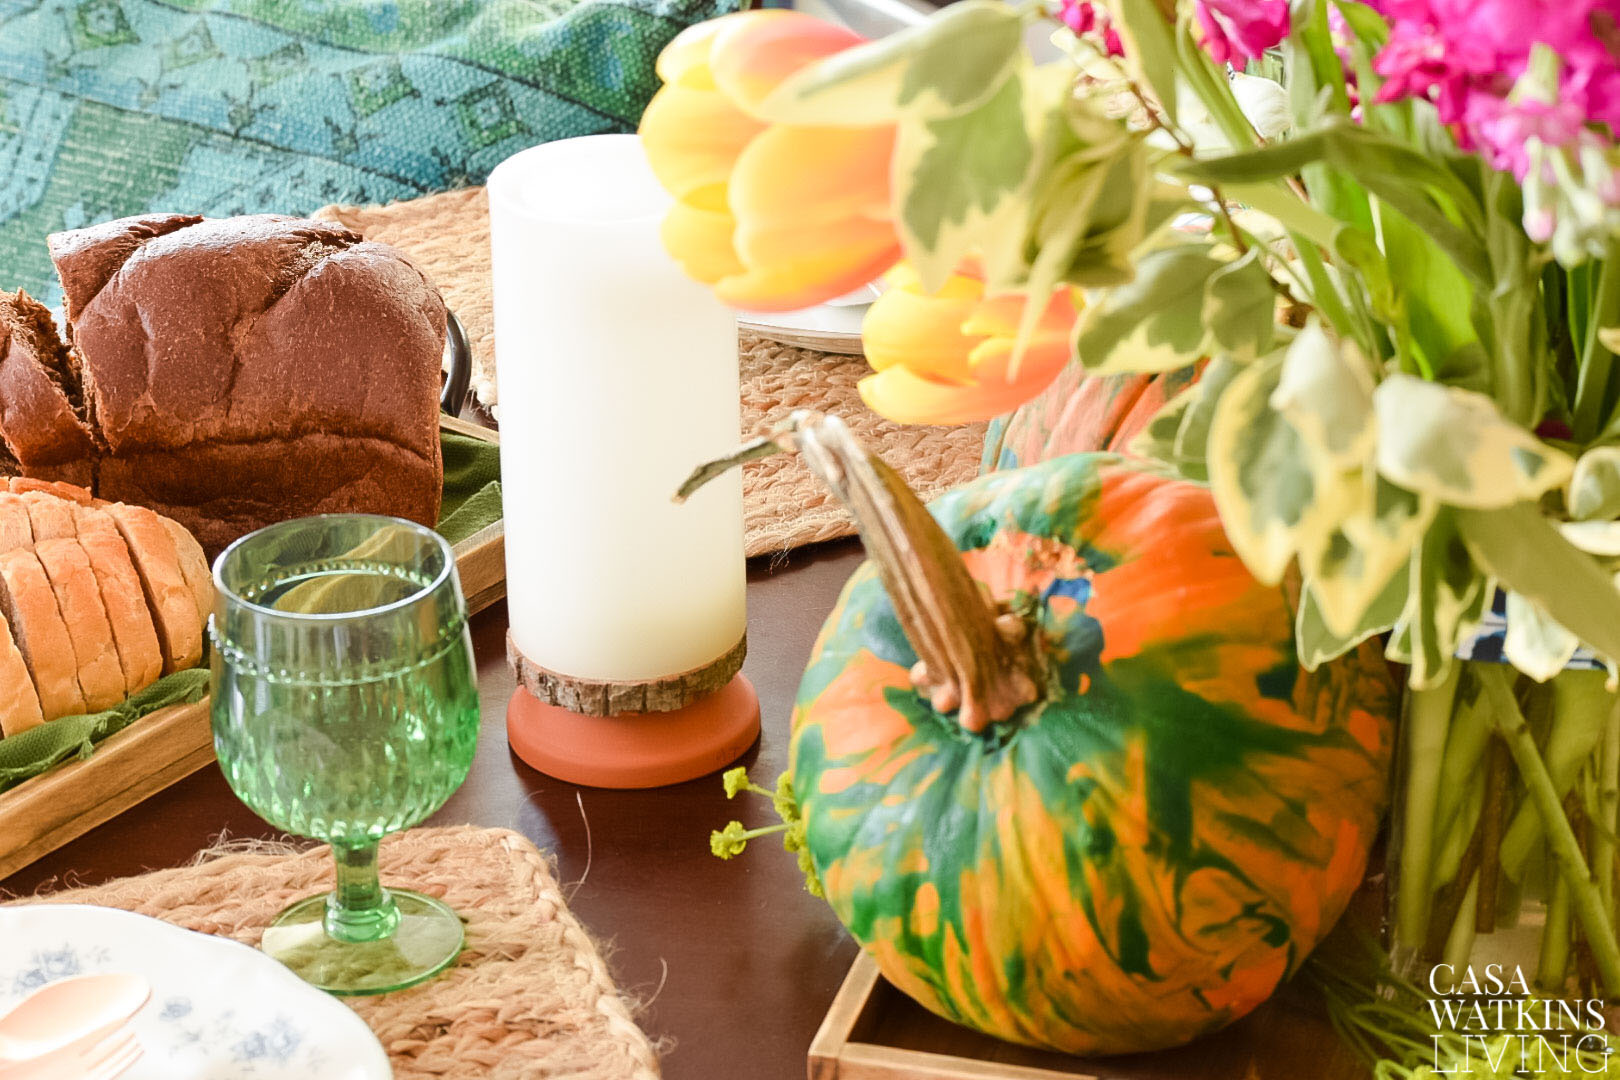 DIY painted pumpkins centerpiece for kids' table